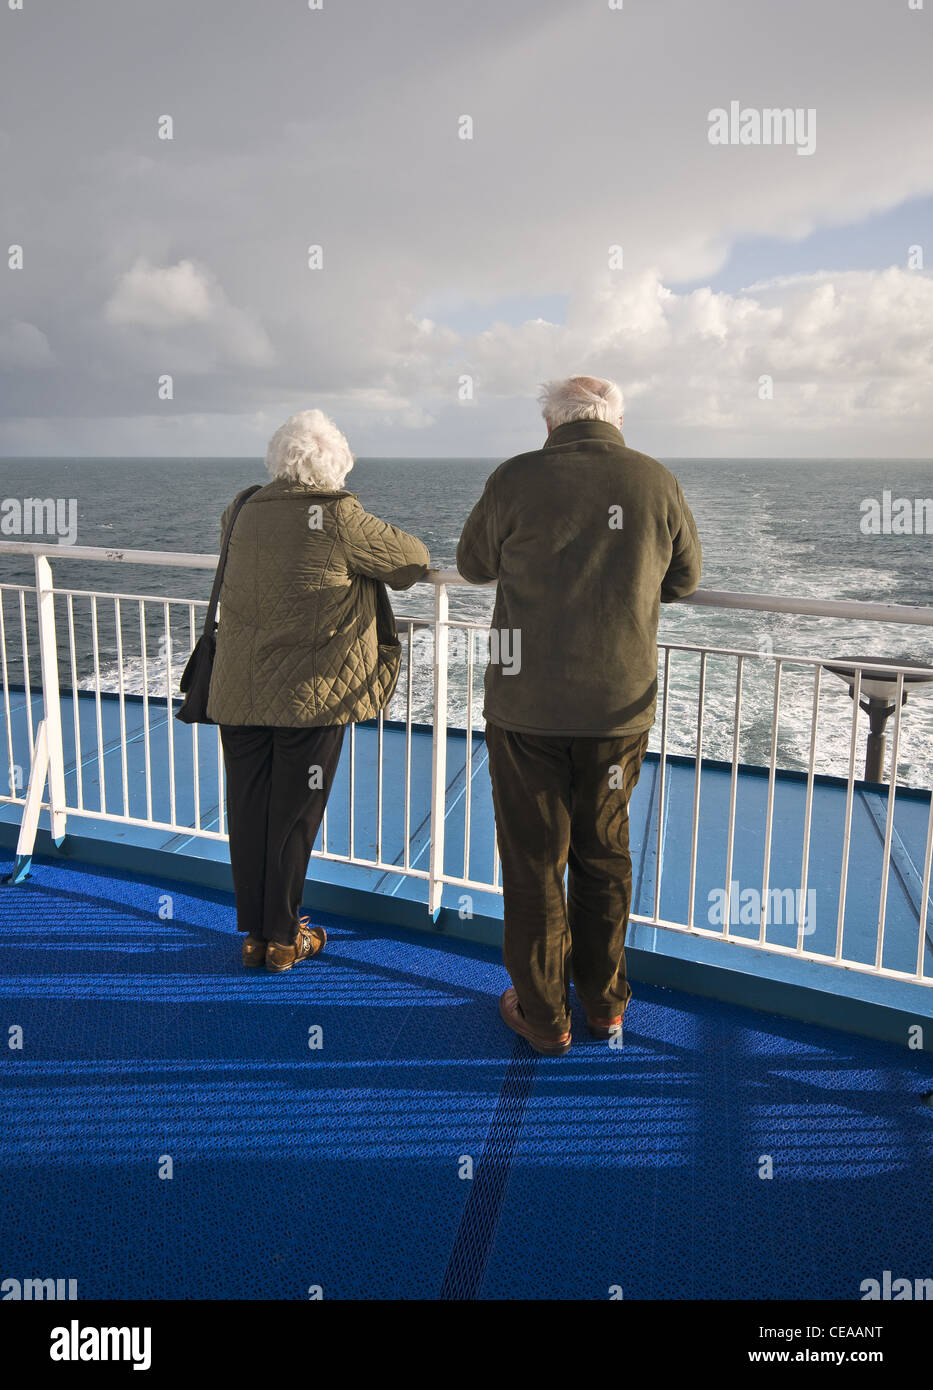 Elderly Couple Looking Out To Sea From A Cruise Ship Stock